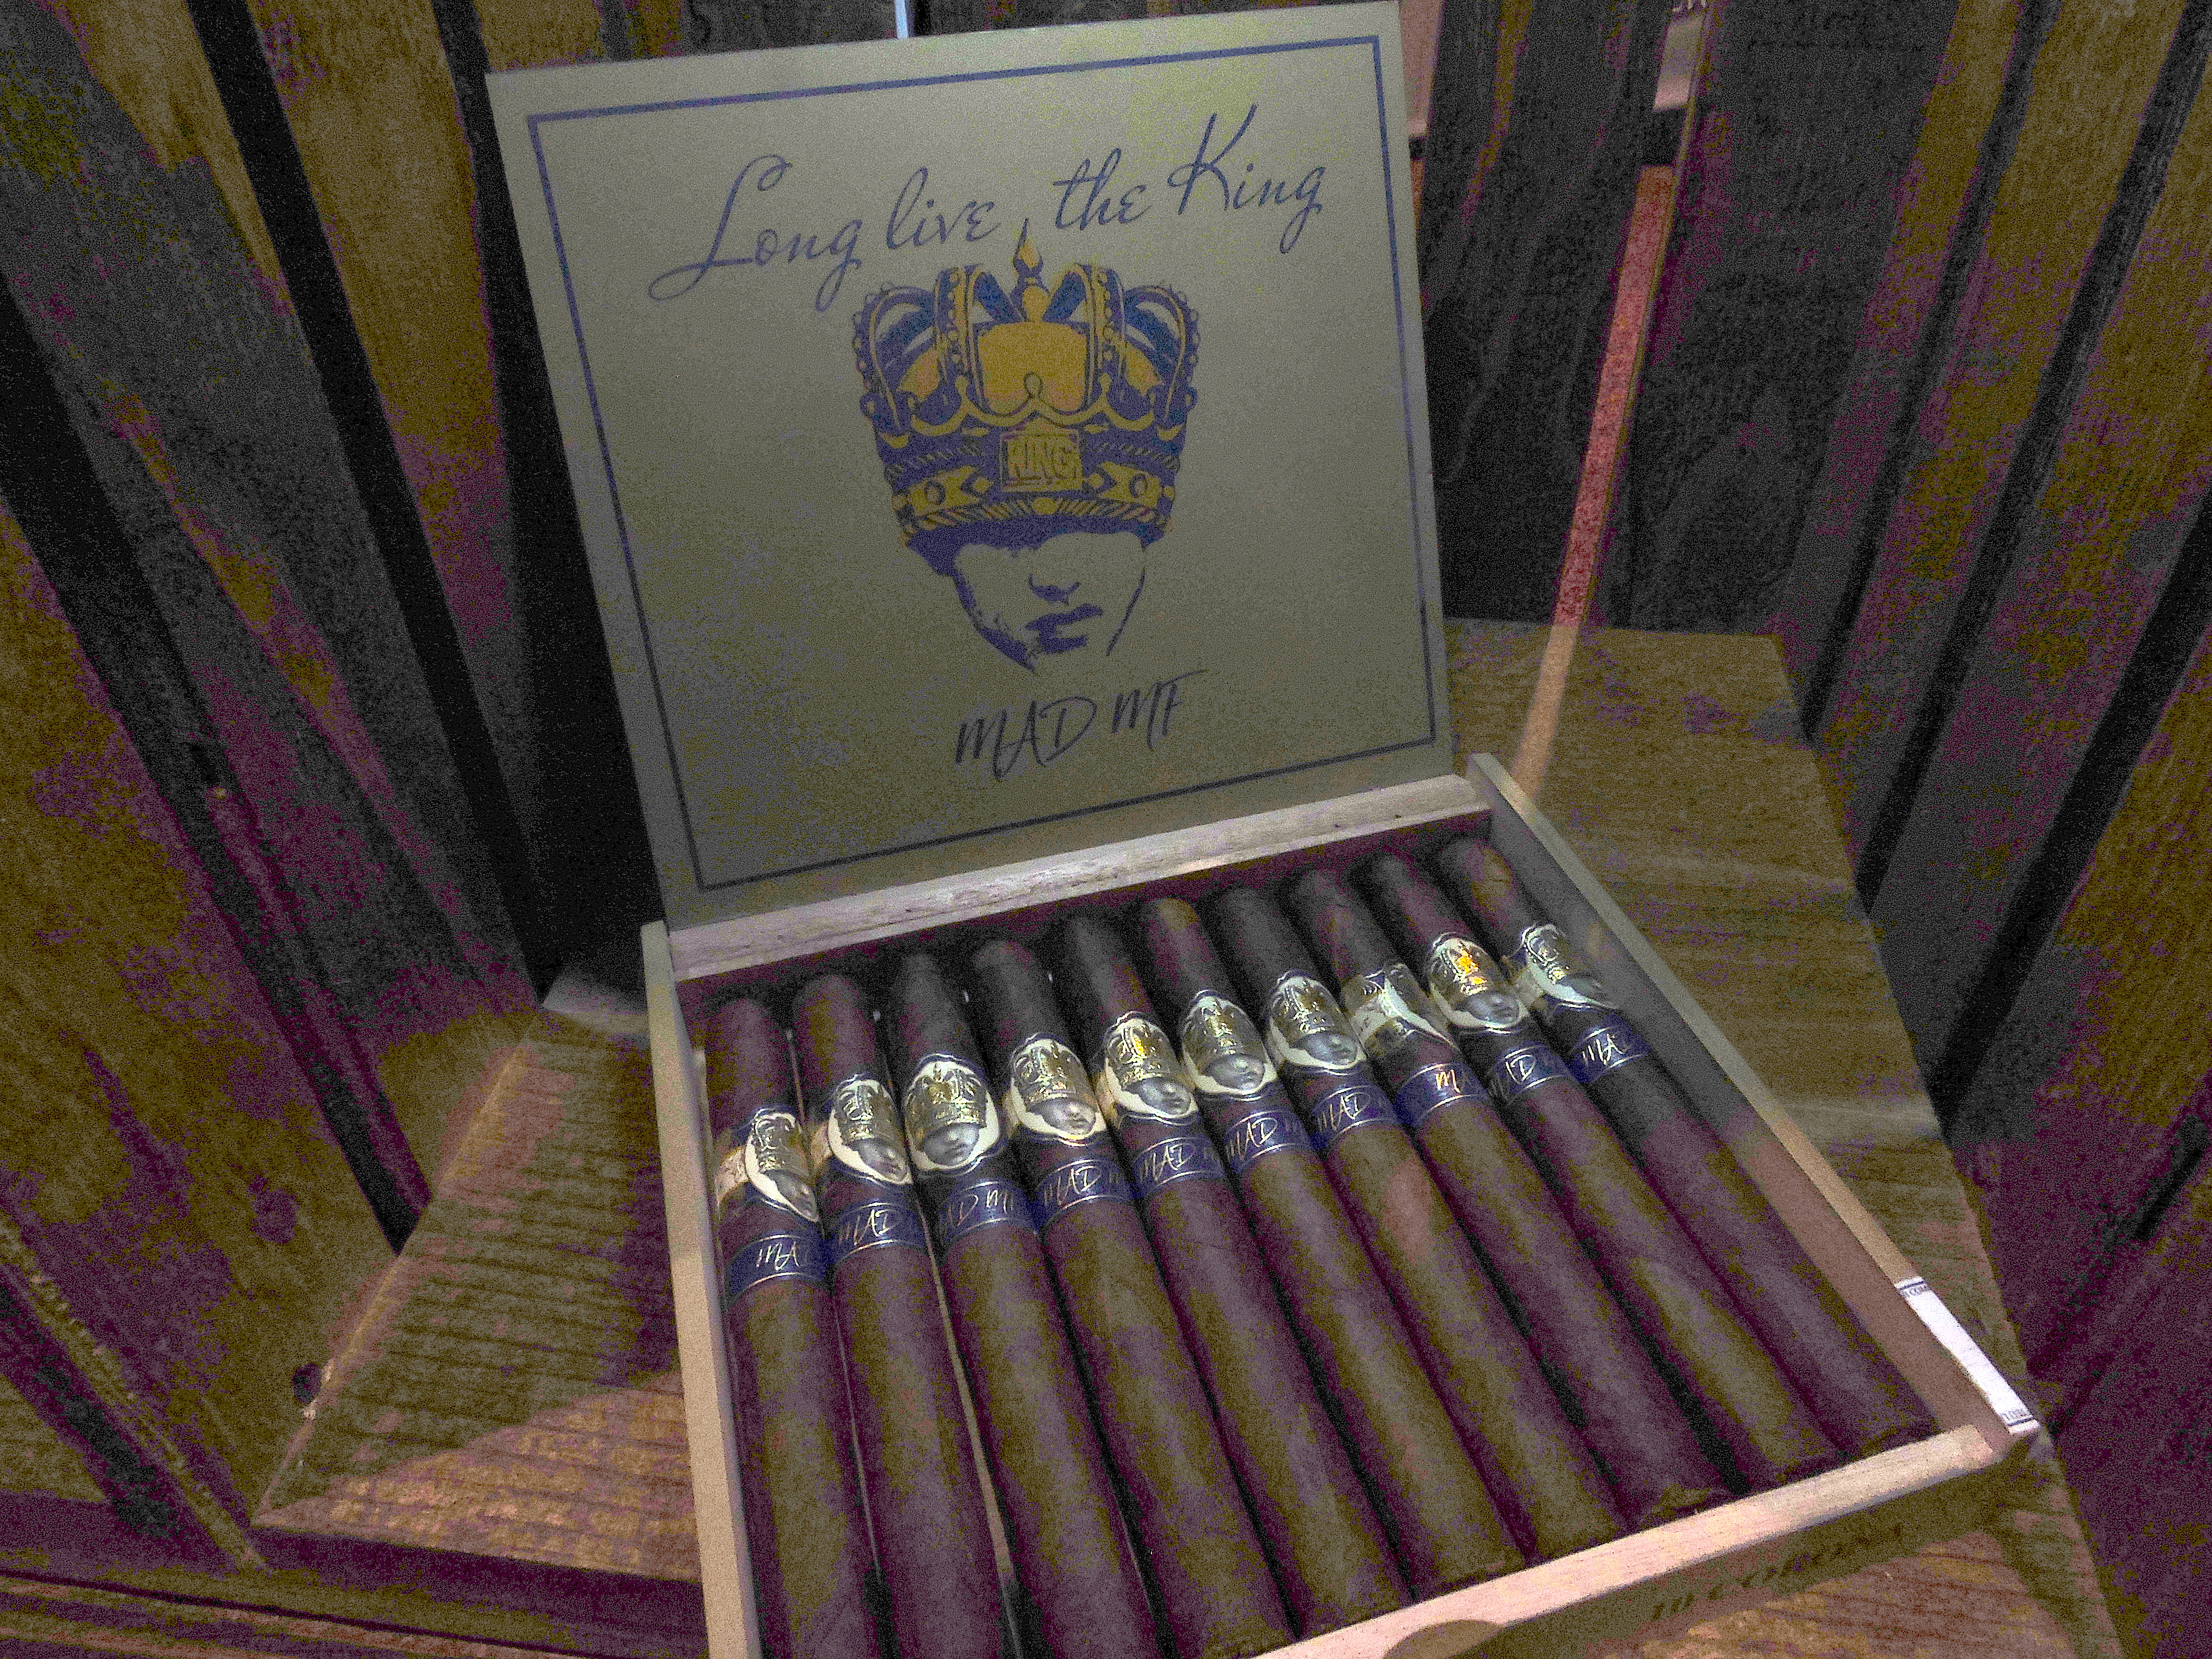 Cigar News: Caldwell Cigar Company Launches Long Live the King MAD MF at 2018 IPCPR